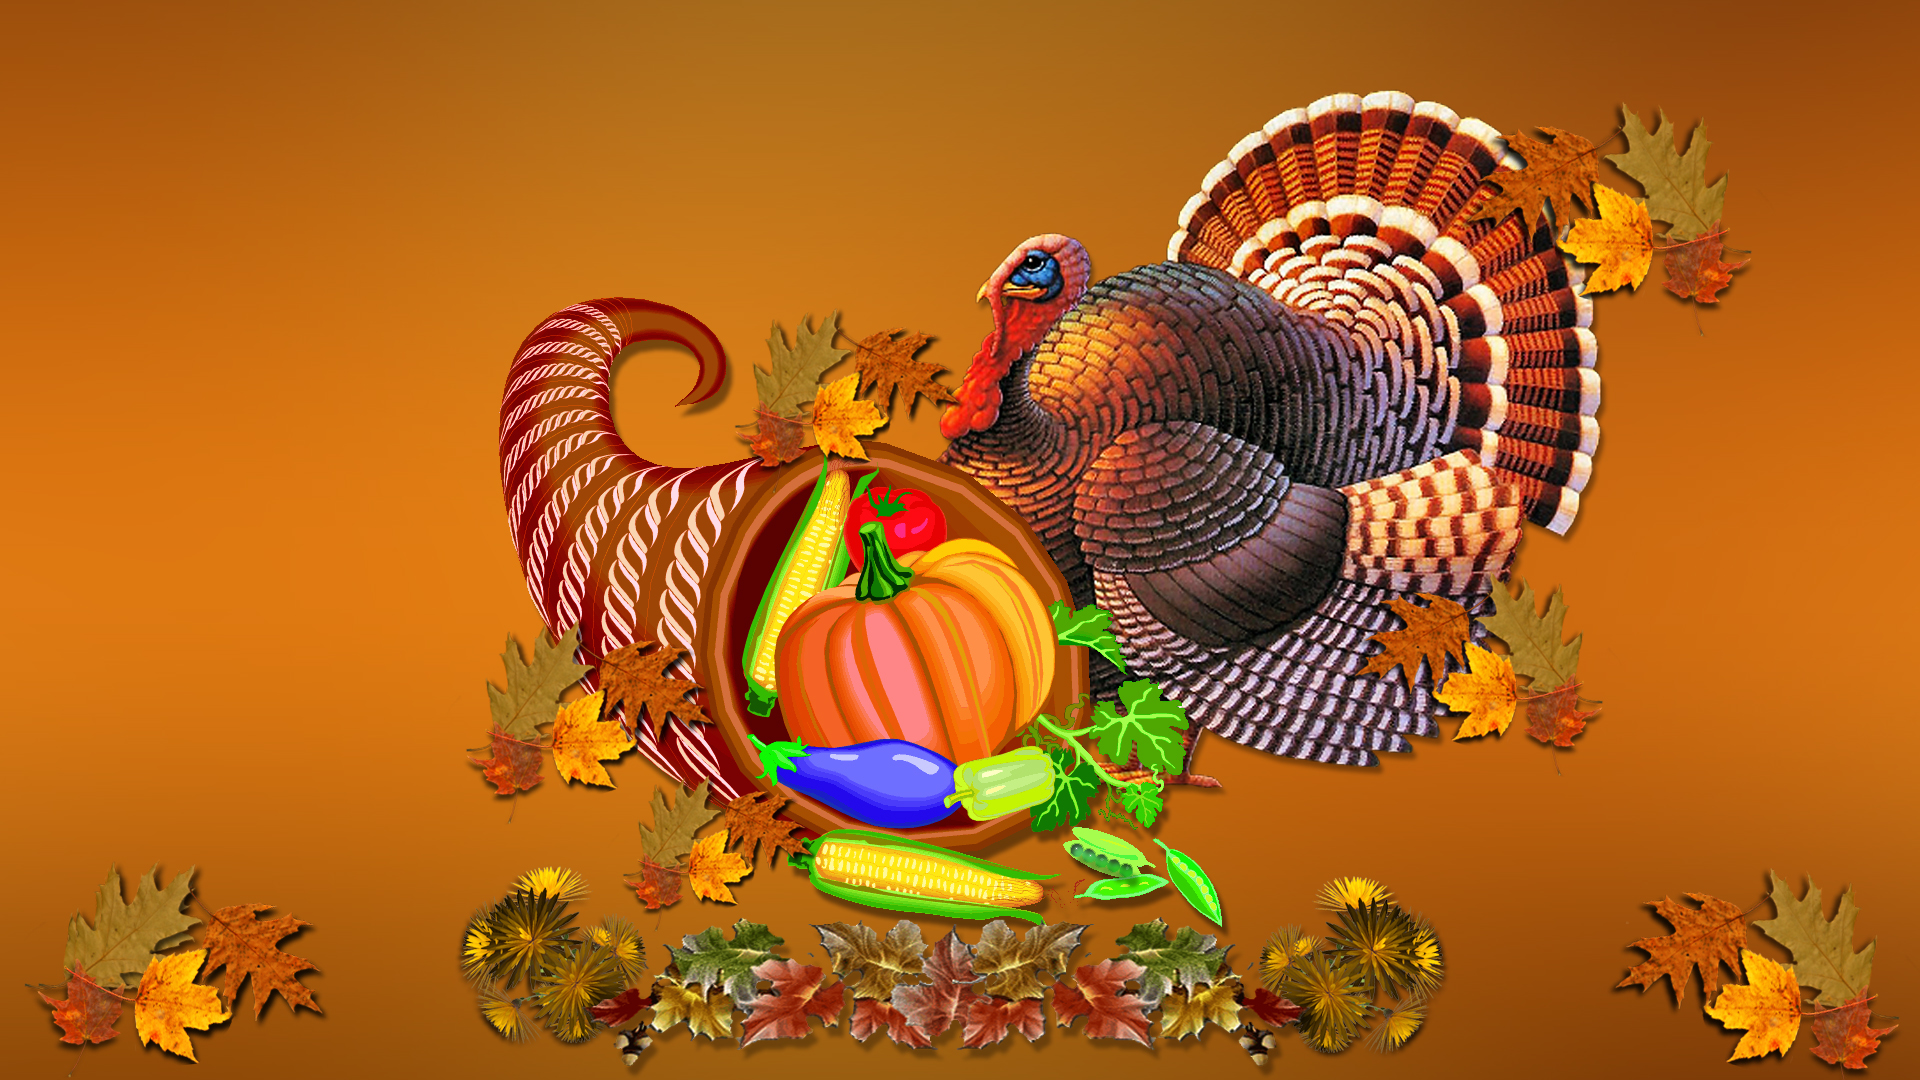 Download the Best Thanksgiving Wallpapers 2015 for Mobile Mac and PC 1920x1080